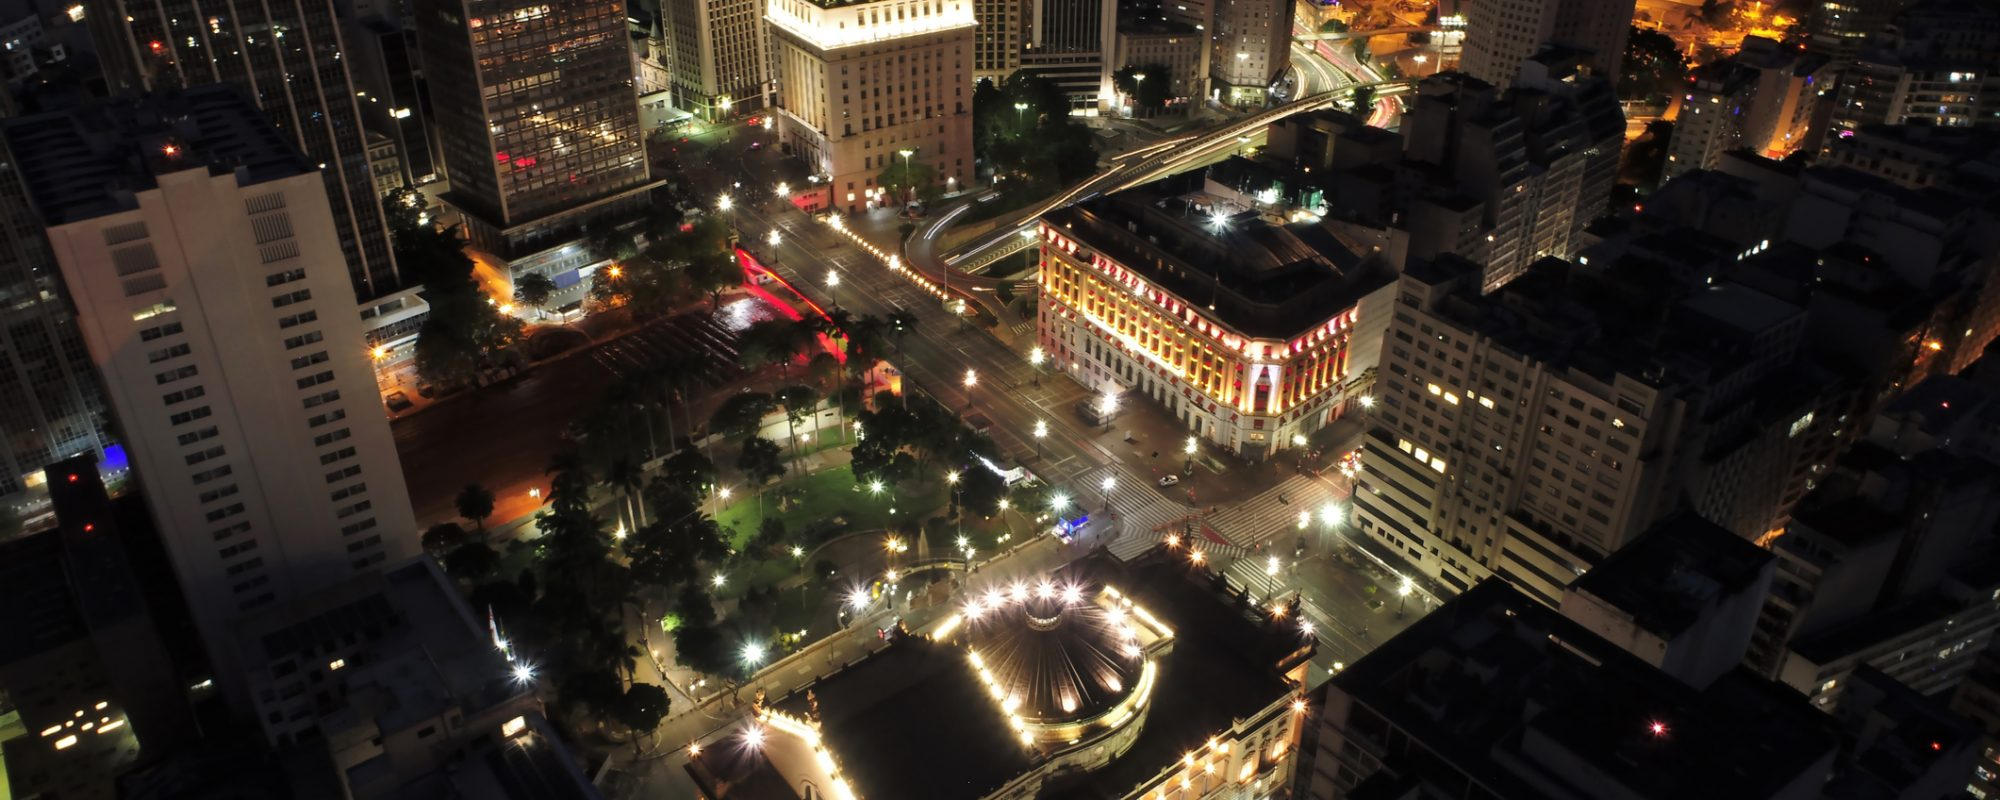 Aerial view of public buildings at night. Famous places of São Paulo, Brazil. Great landscape